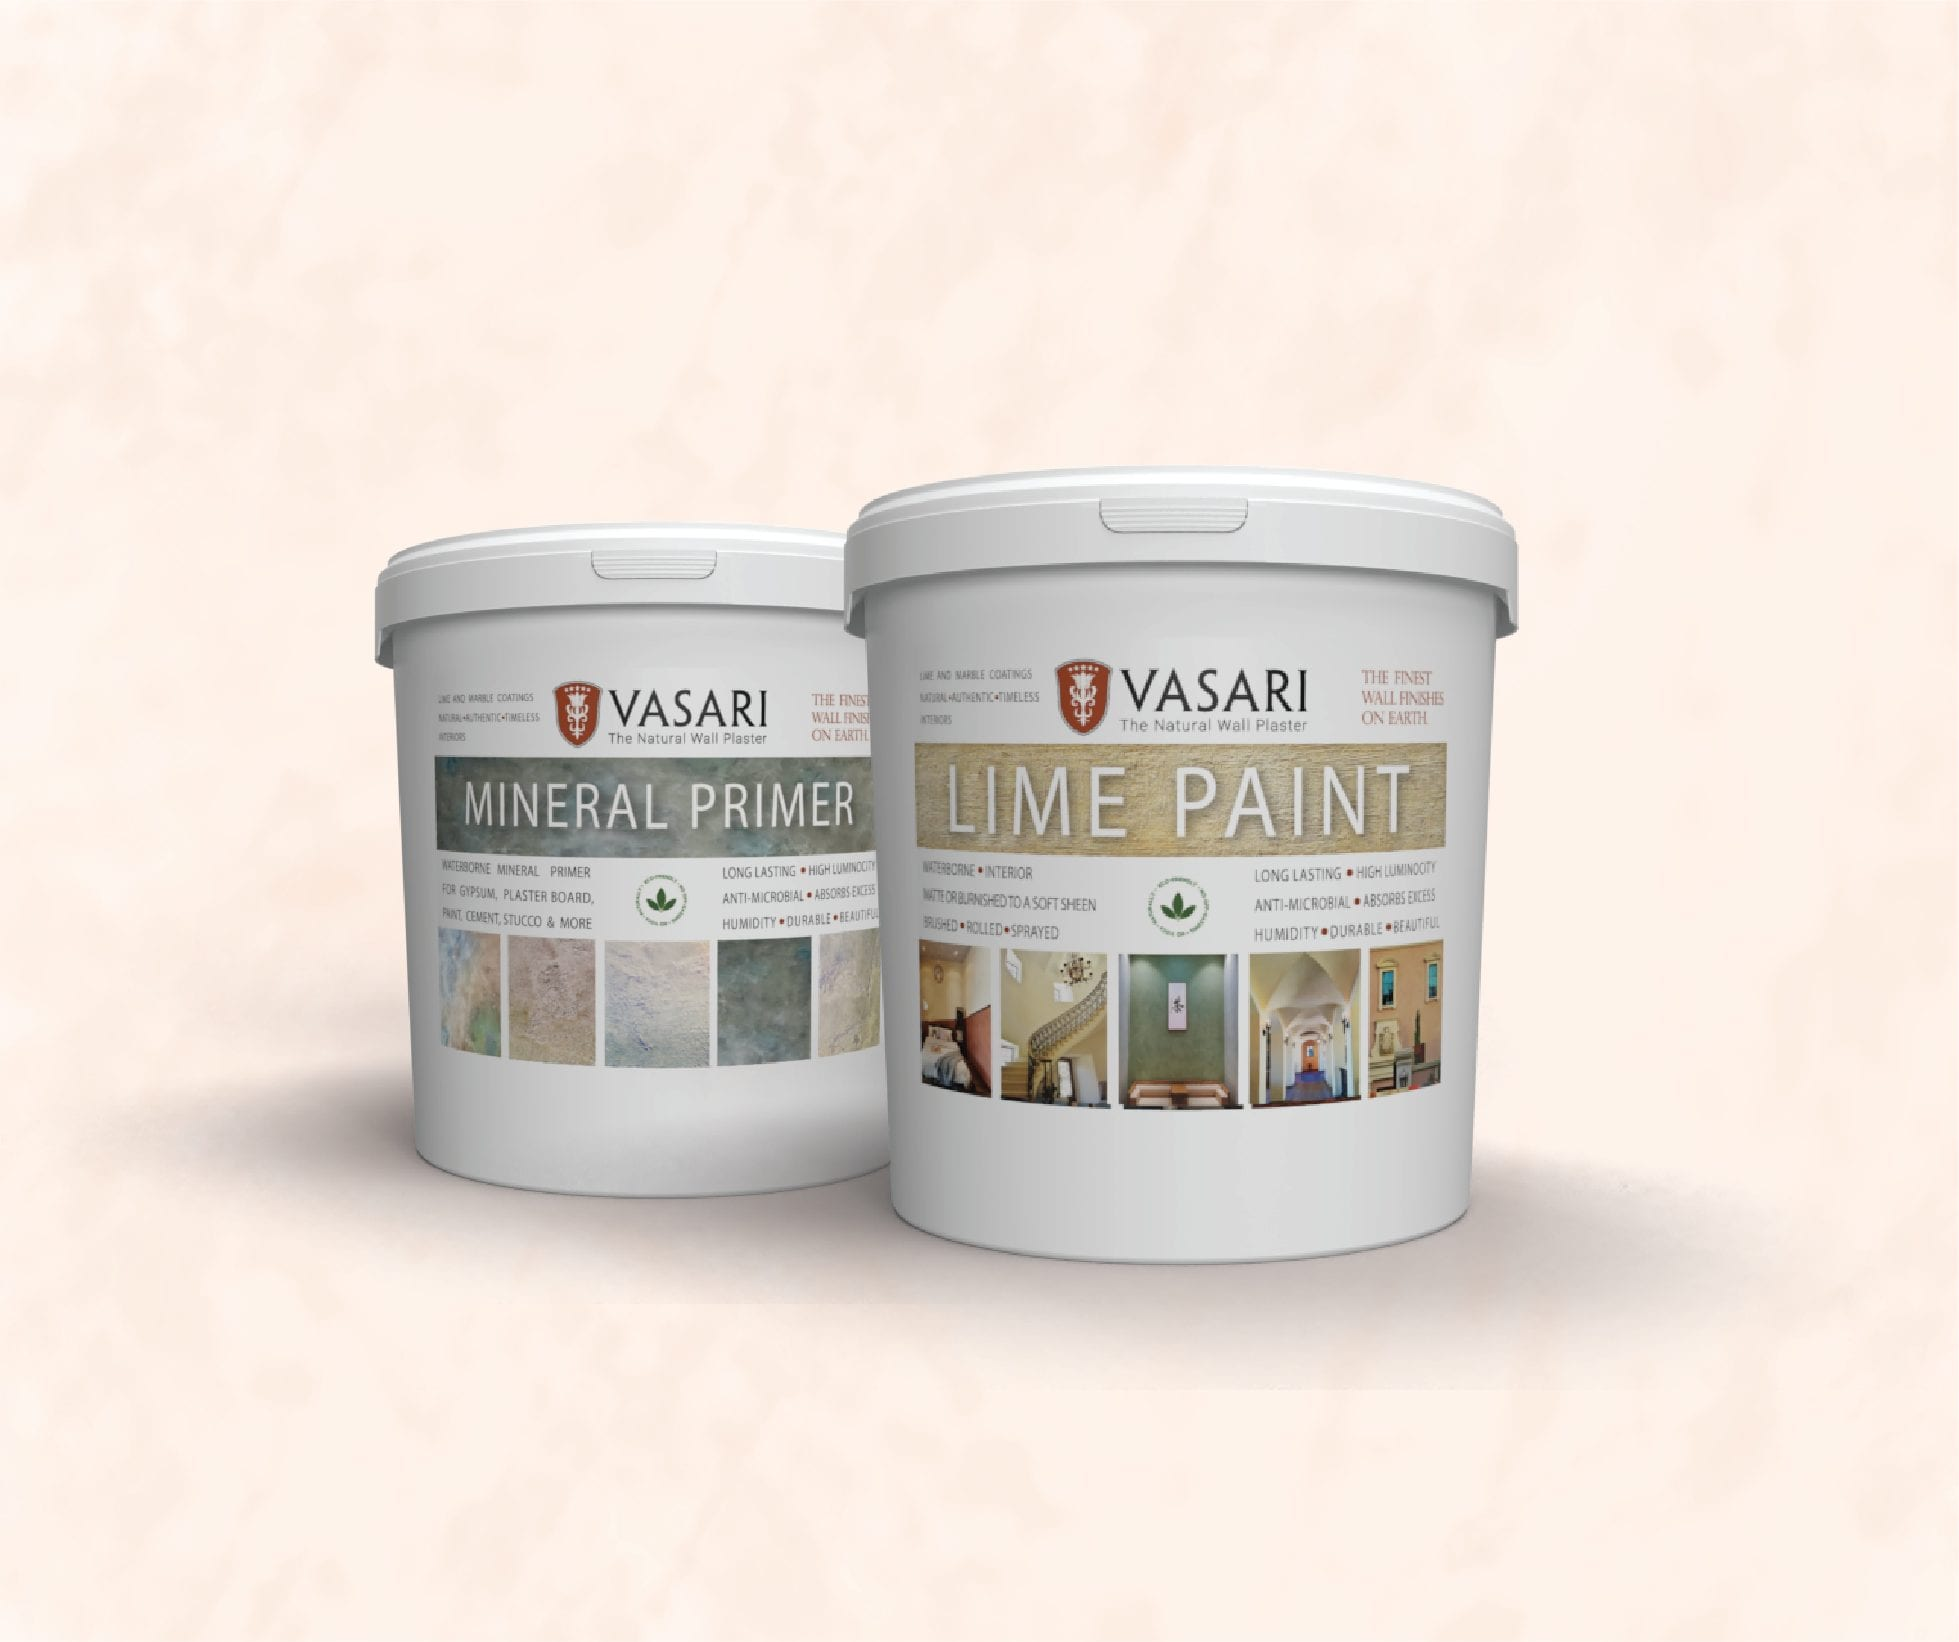 Vasari Lime Paint